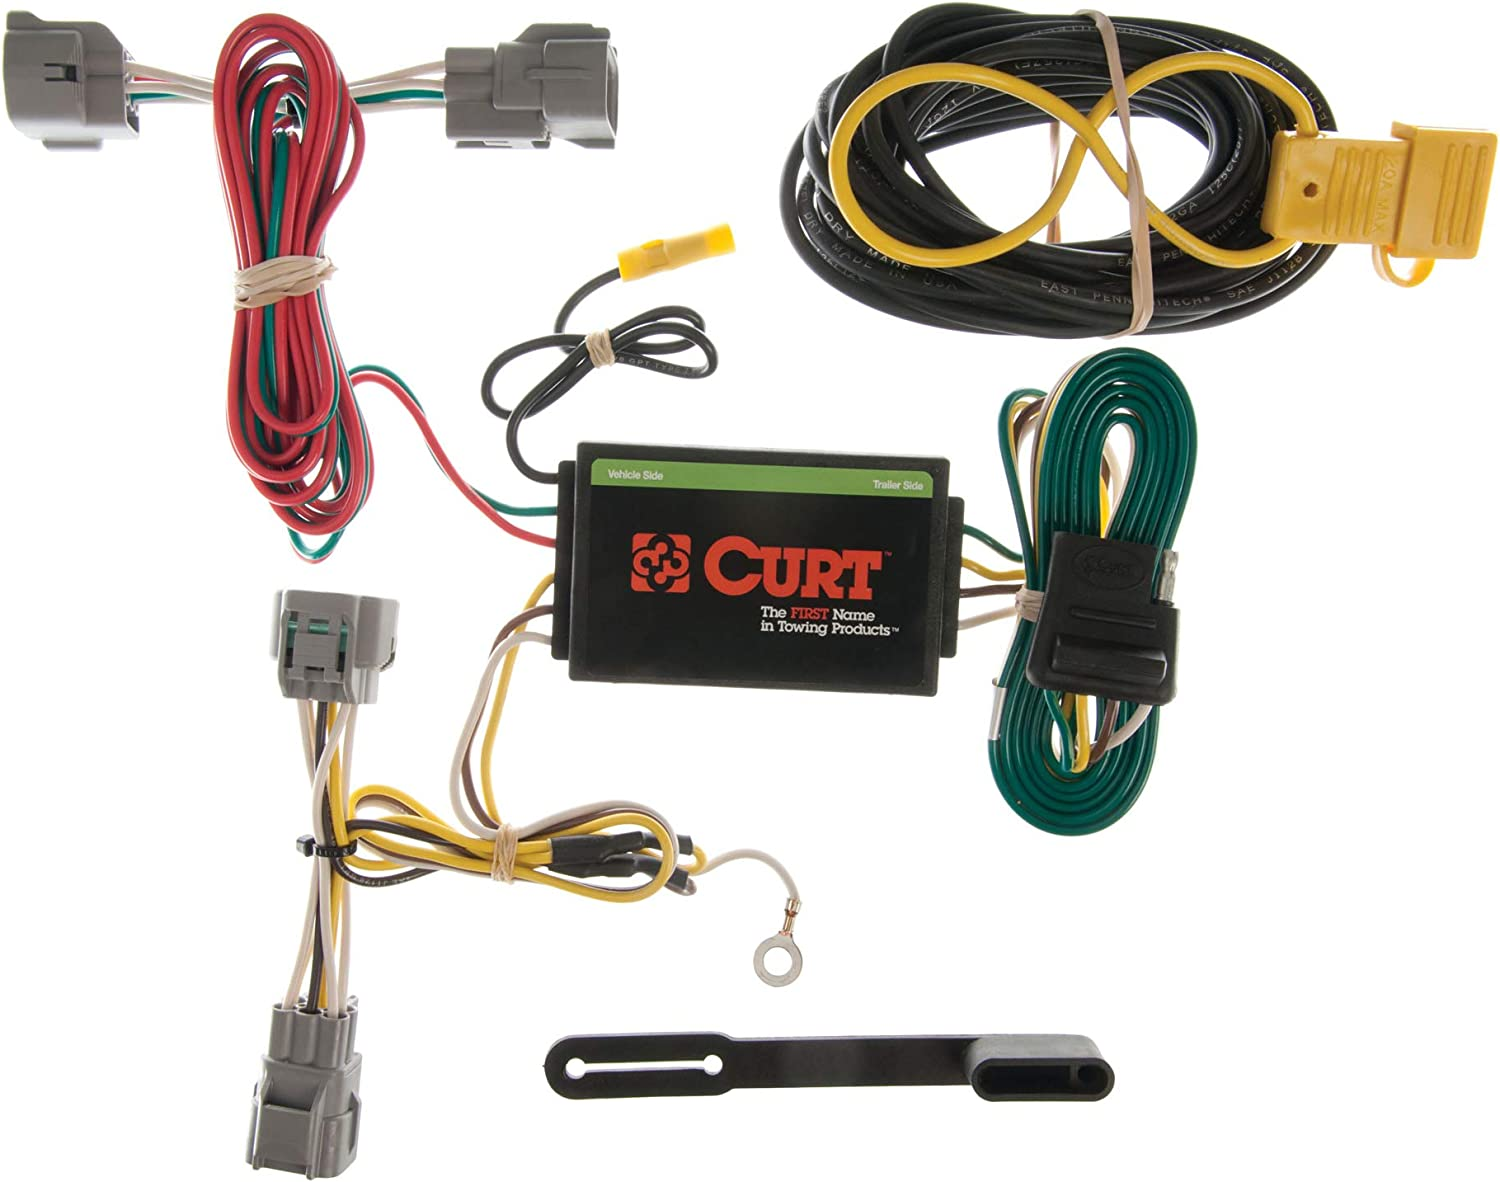 CURT 55349 Vehicle-Side Custom 4-Pin Fit Harness Trailer Wiring Max 85% OFF Large special price